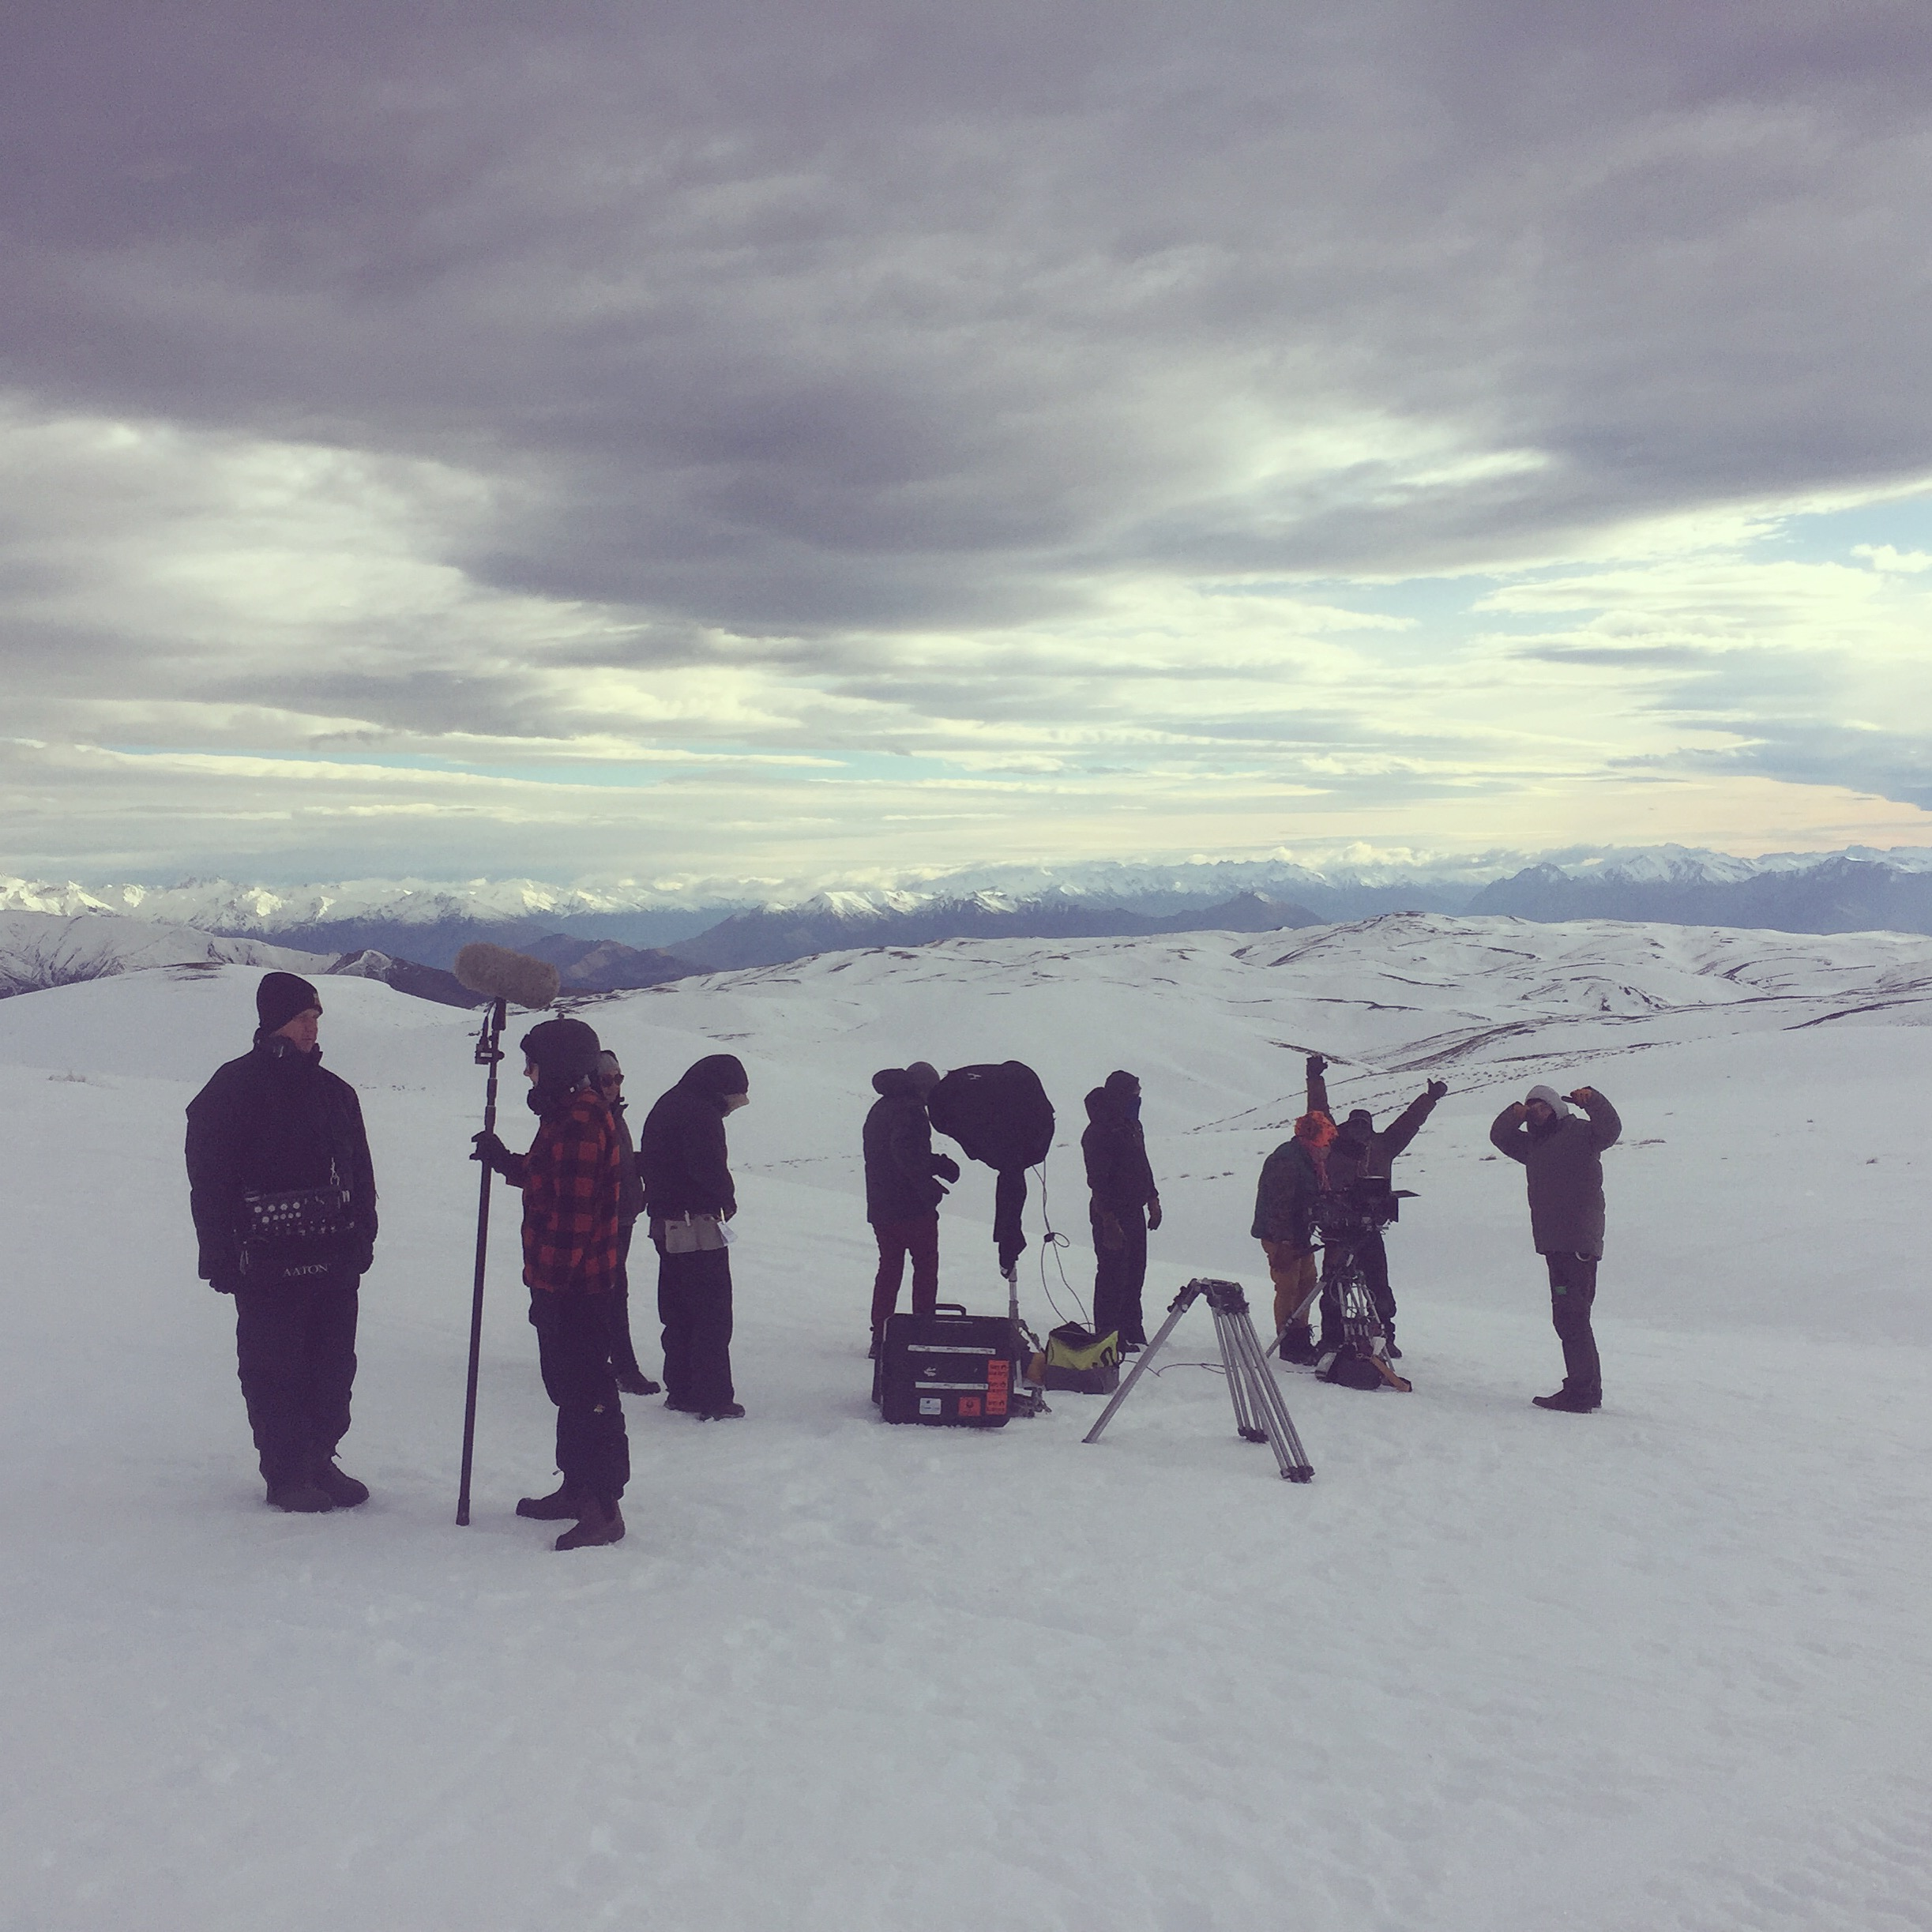 Filming on the snow